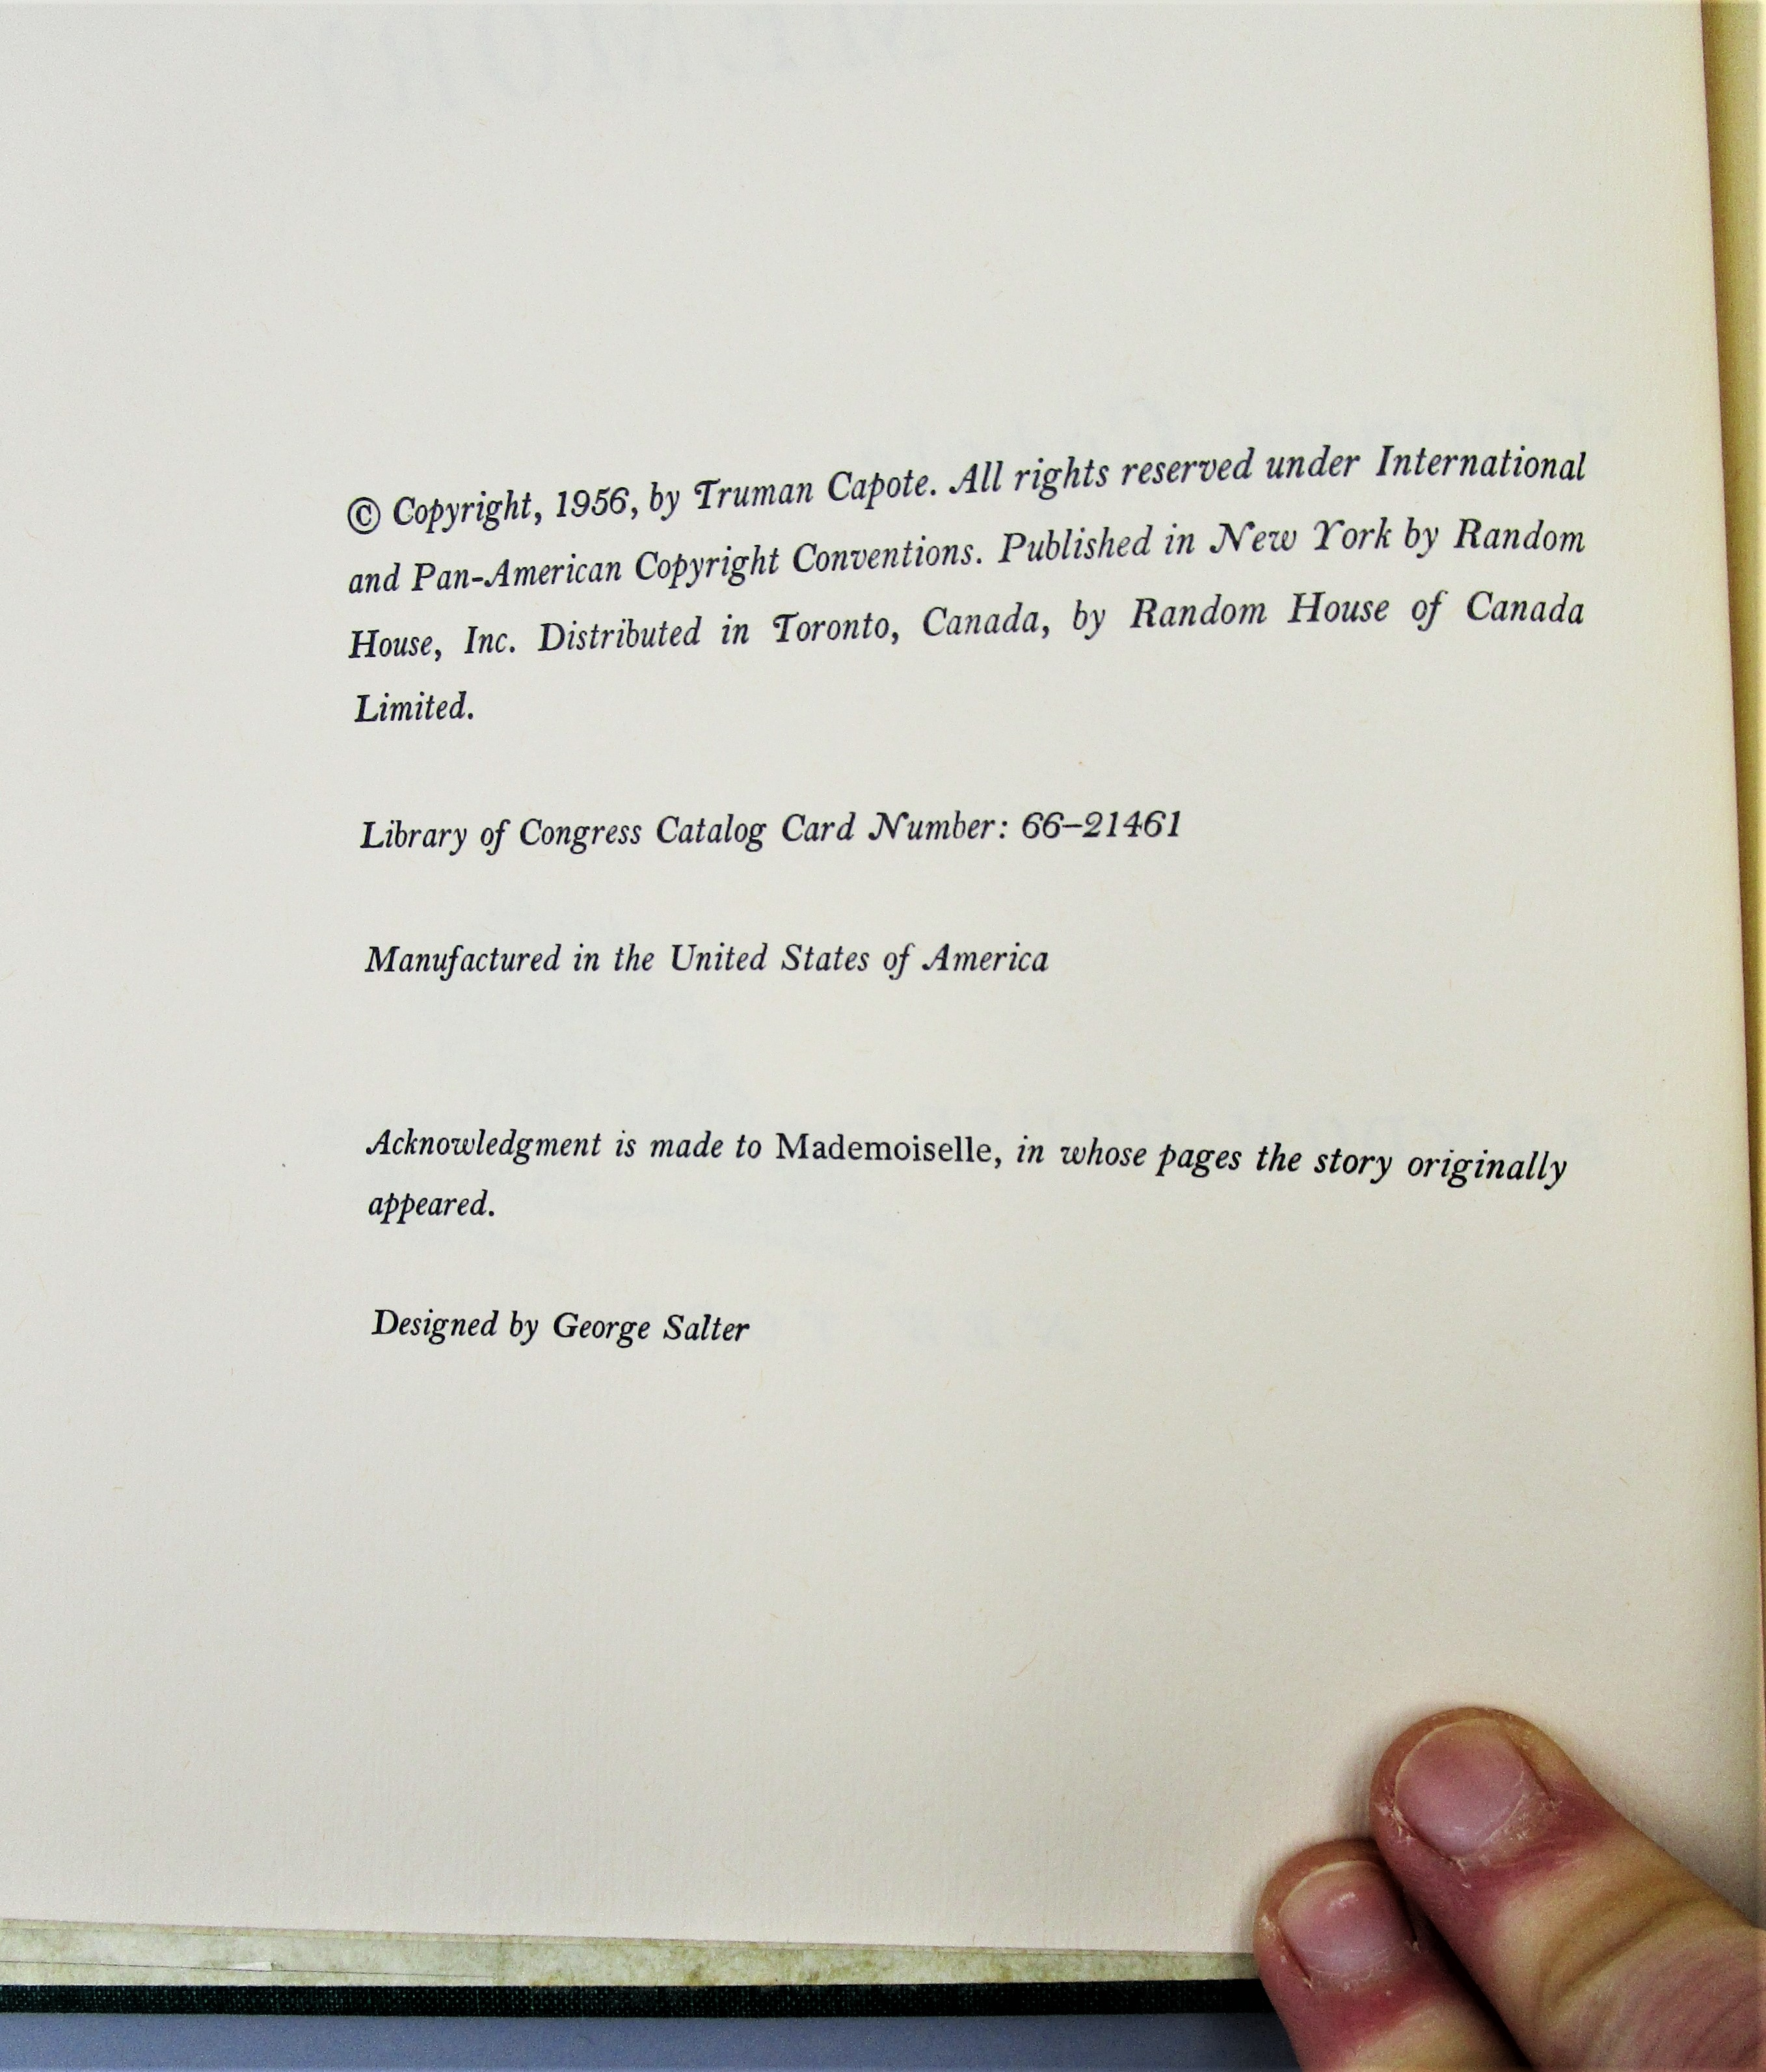 A CHRISTMAS MEMORY, by Truman Capote - 1956 [Signed Ltd Ed]